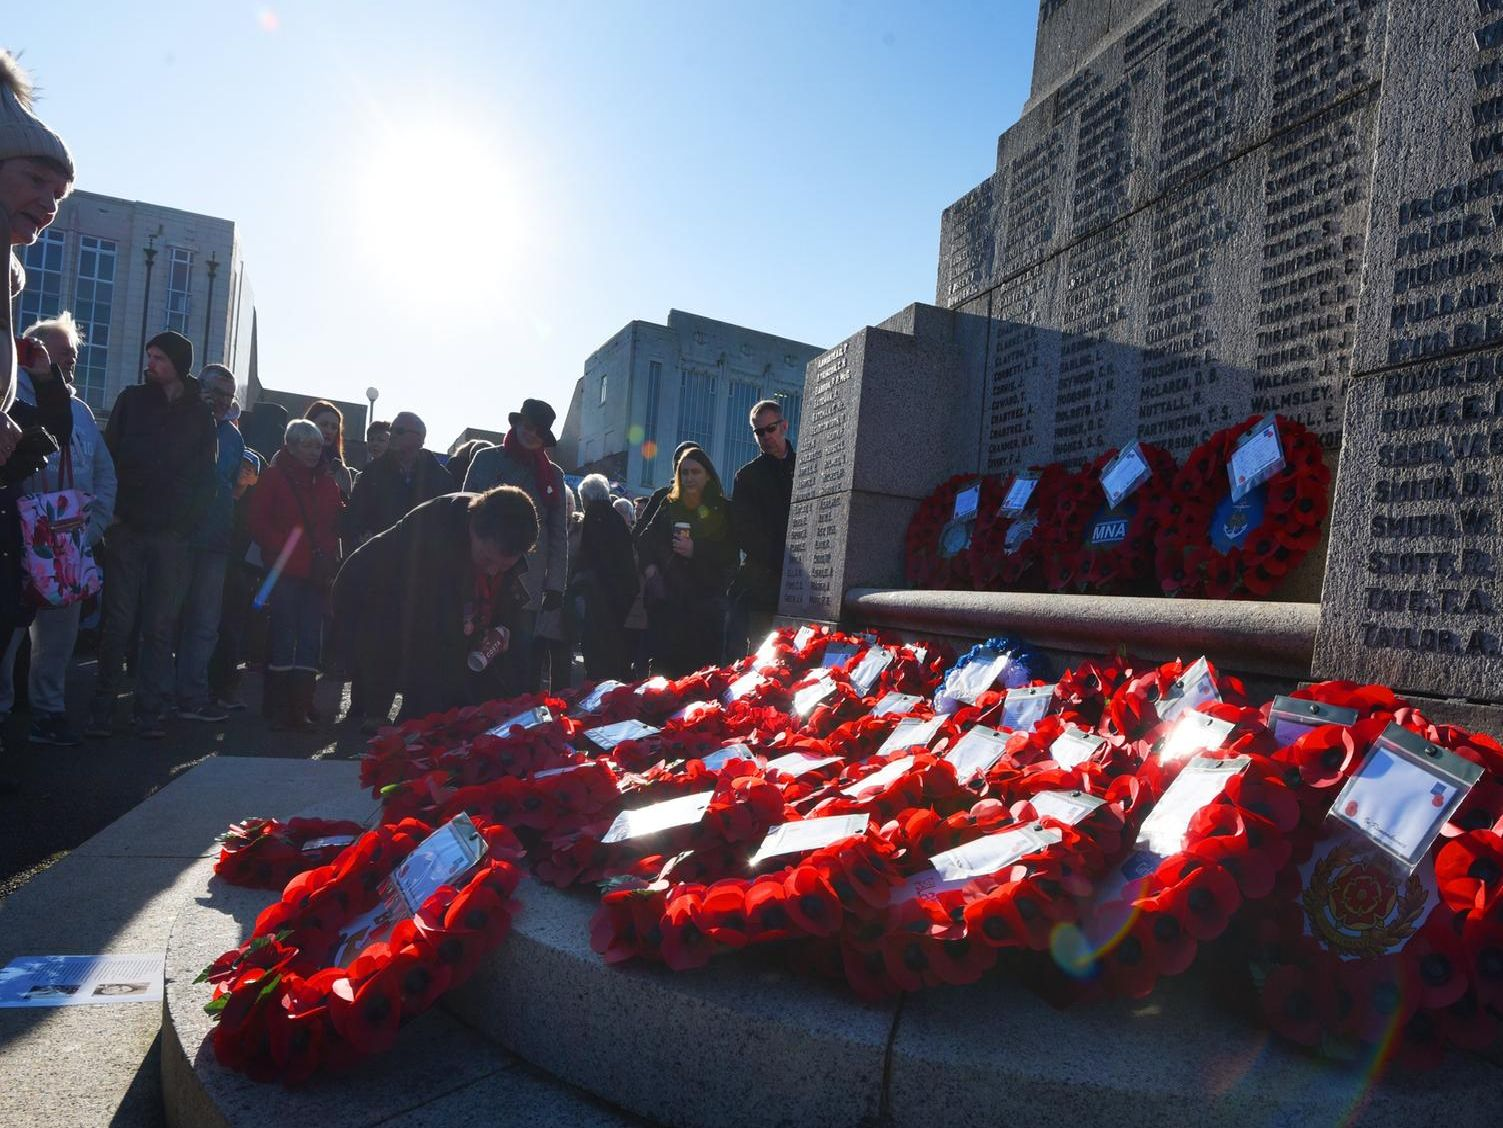 Wreaths are laid on the cenotaph on Remembrance Day.